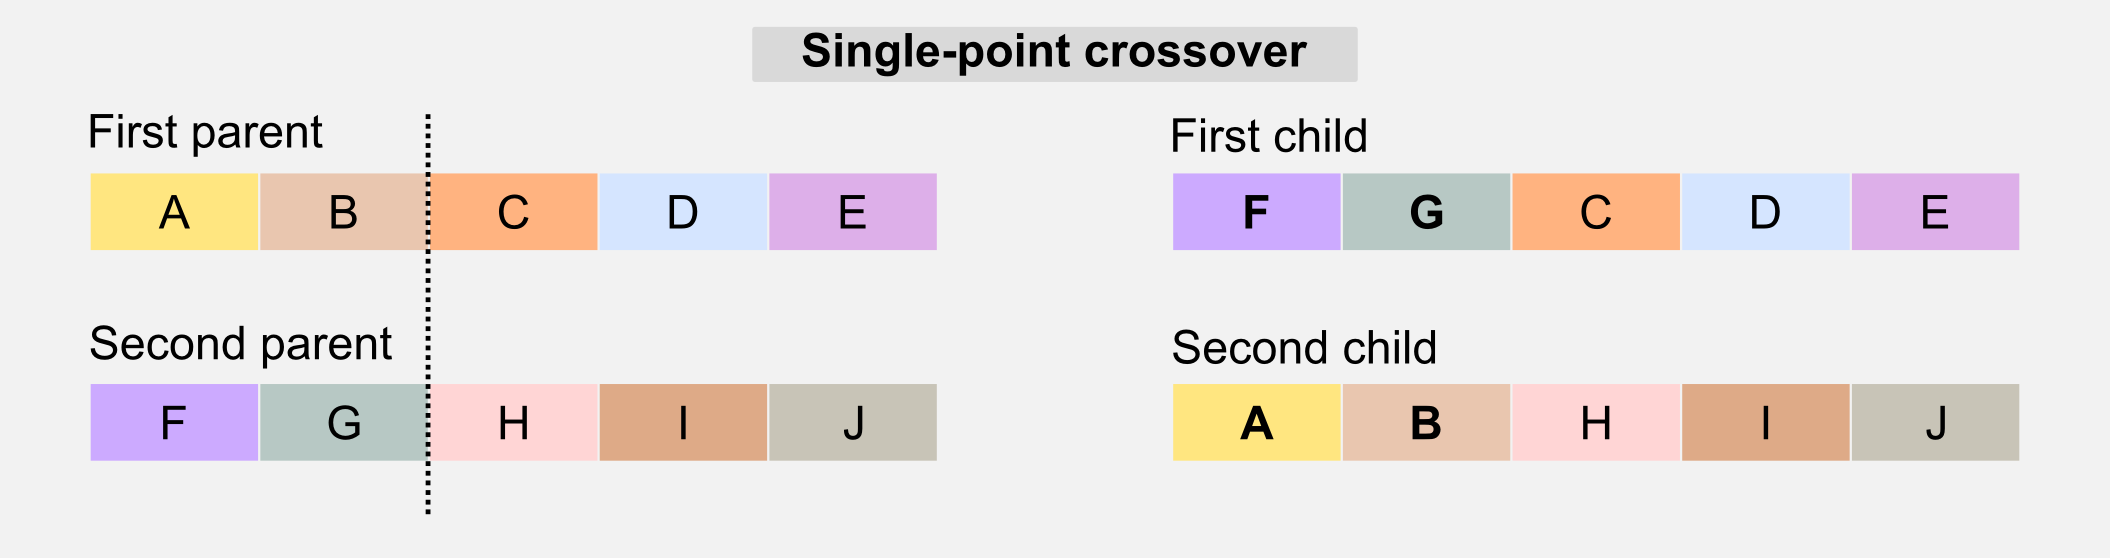 Genetic Algorithms Single Point Crossover